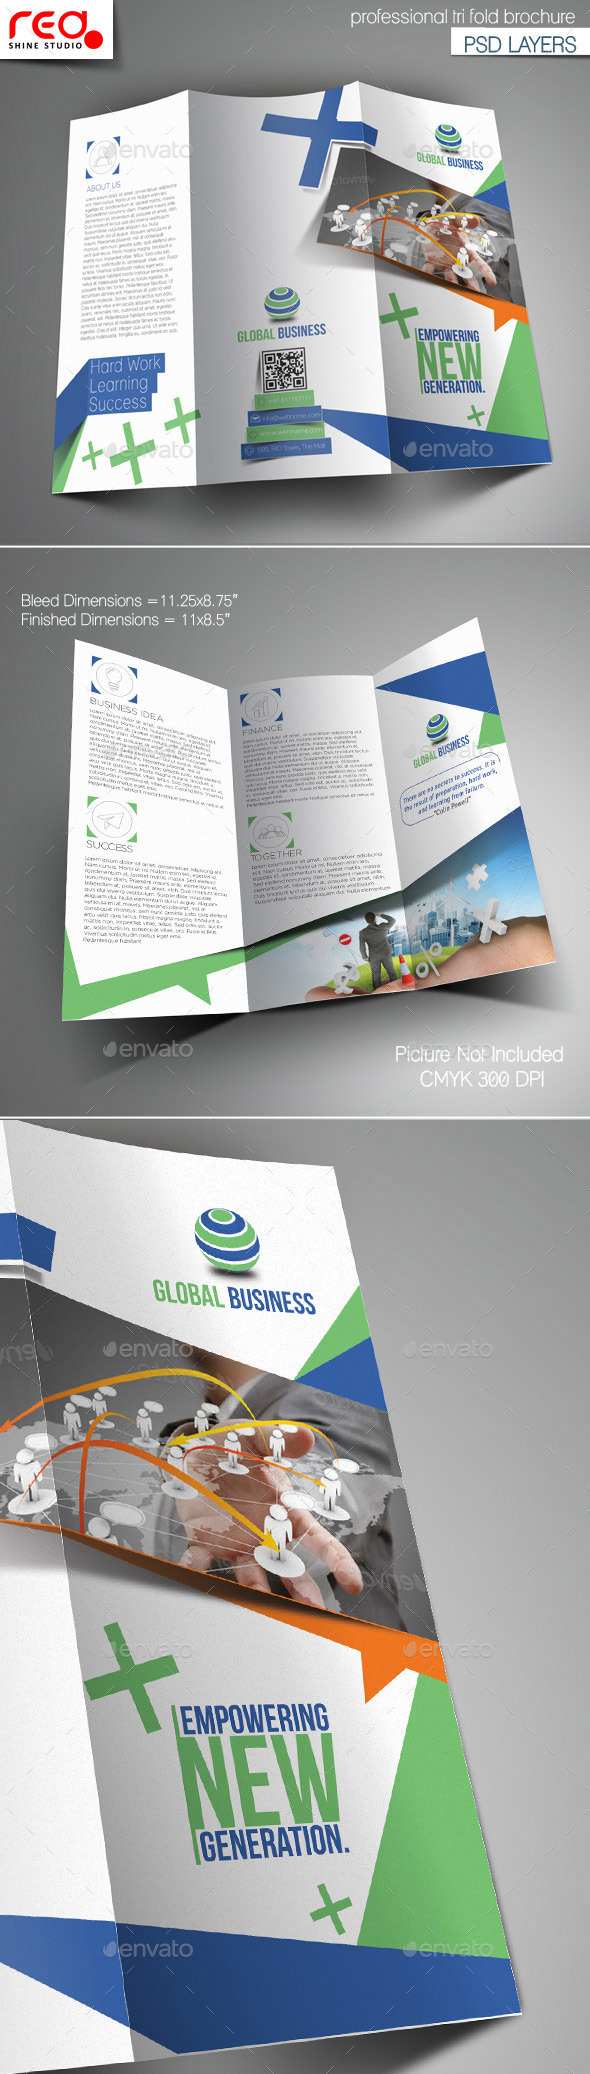 GraphicRiver Corporate Business Trifold Brochure Template 10796773